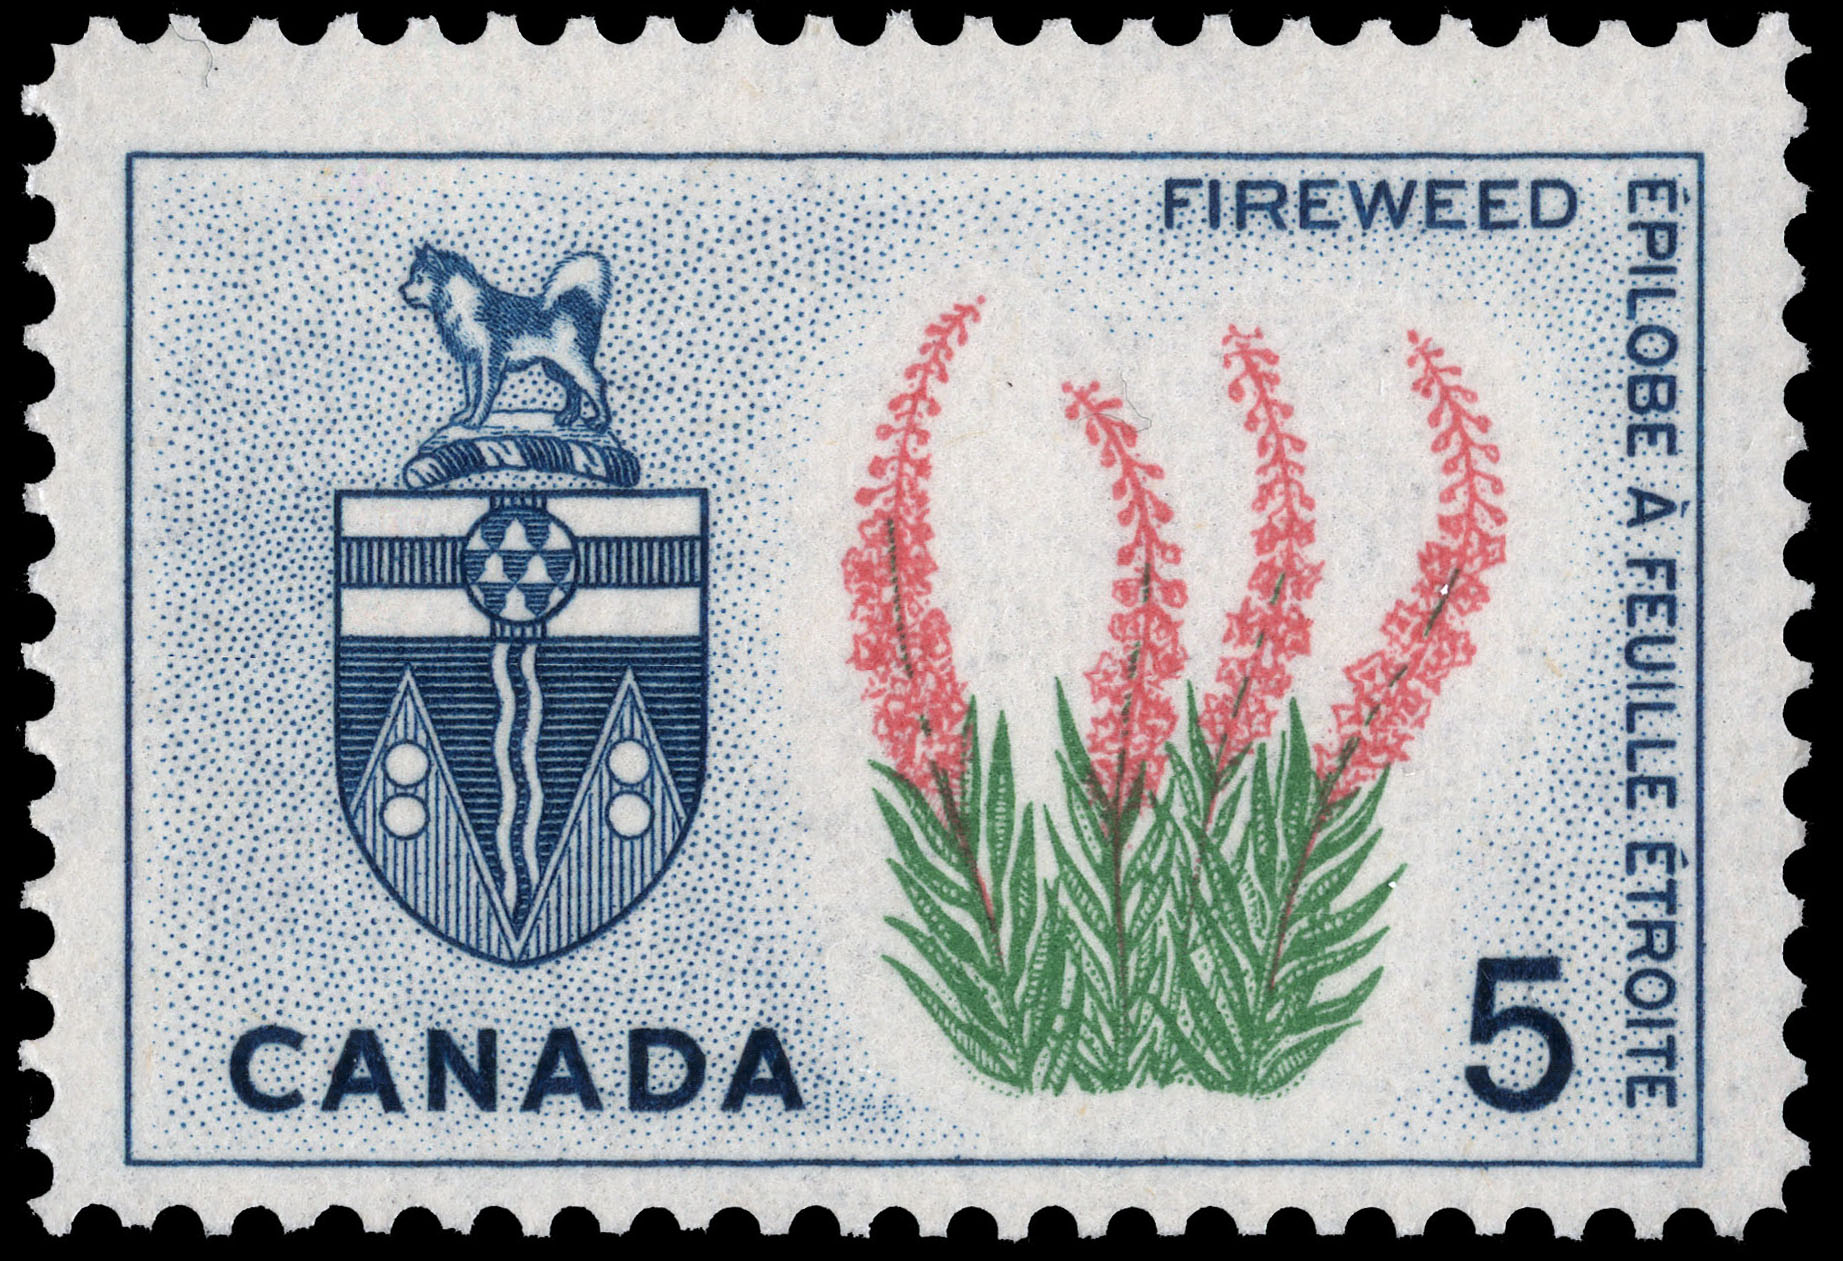 Fireweed, Yukon Canada Postage Stamp